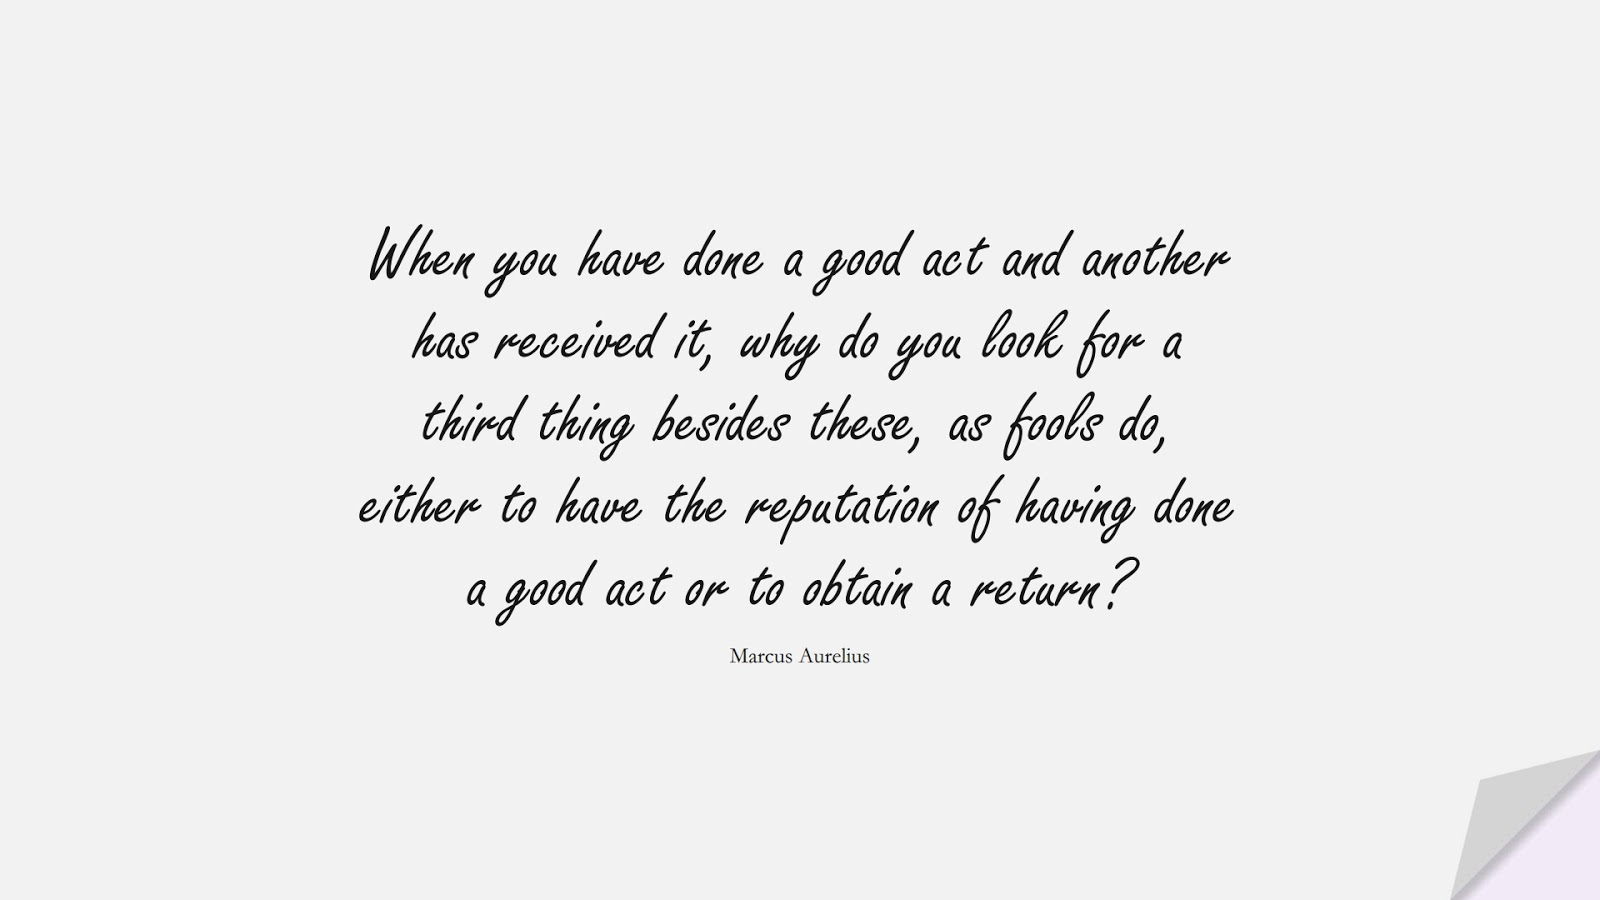 When you have done a good act and another has received it, why do you look for a third thing besides these, as fools do, either to have the reputation of having done a good act or to obtain a return? (Marcus Aurelius);  #MarcusAureliusQuotes